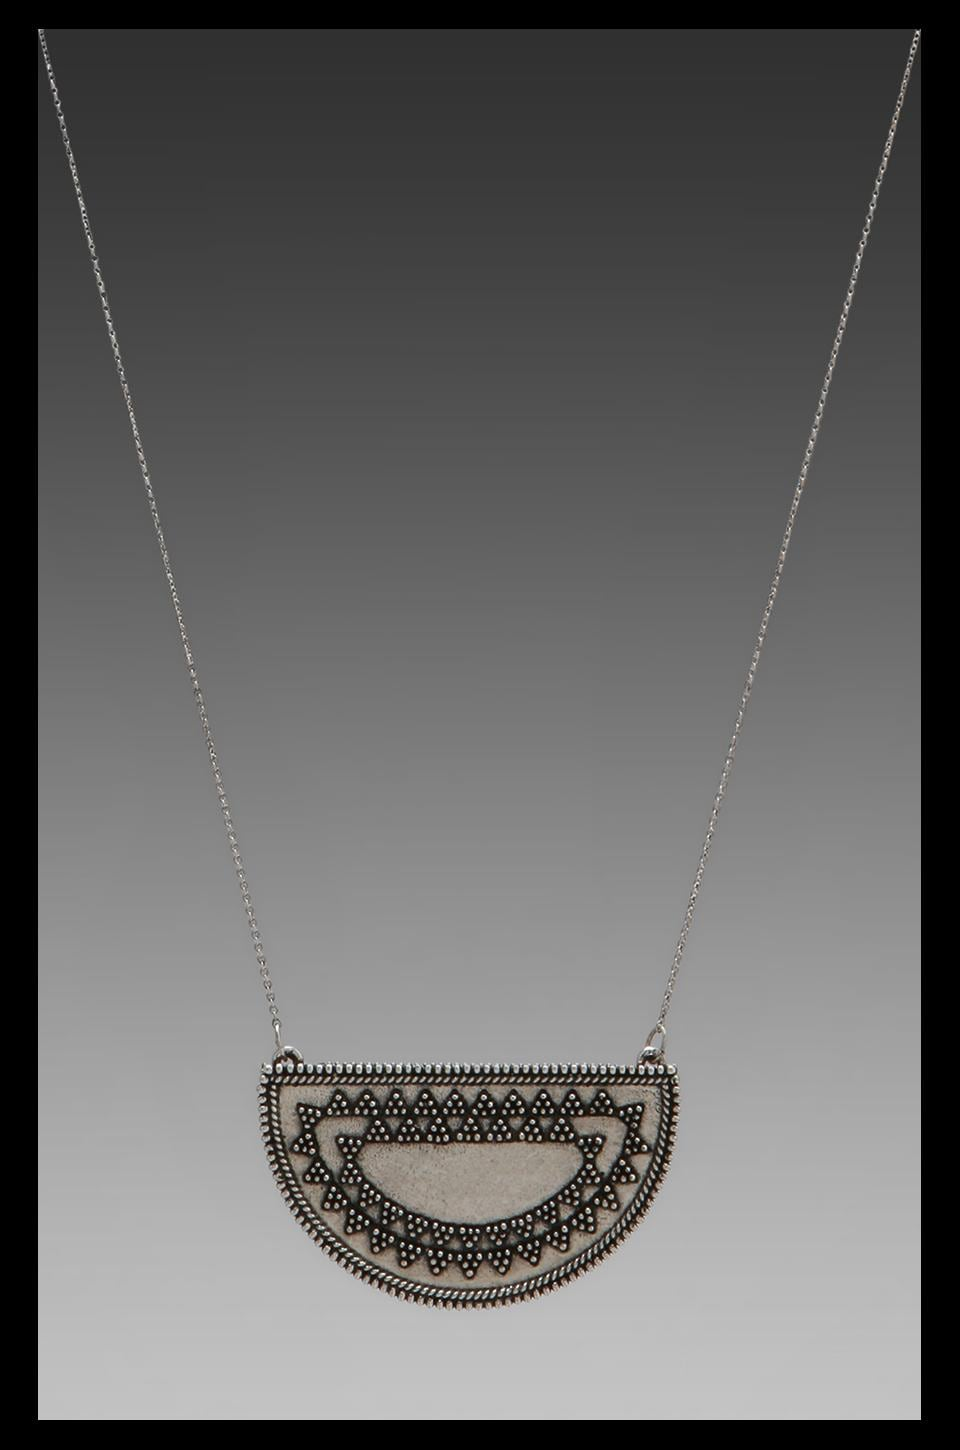 House of Harlow 1960 House of Harlow Tuareg Granulation Necklace in Antique Silver